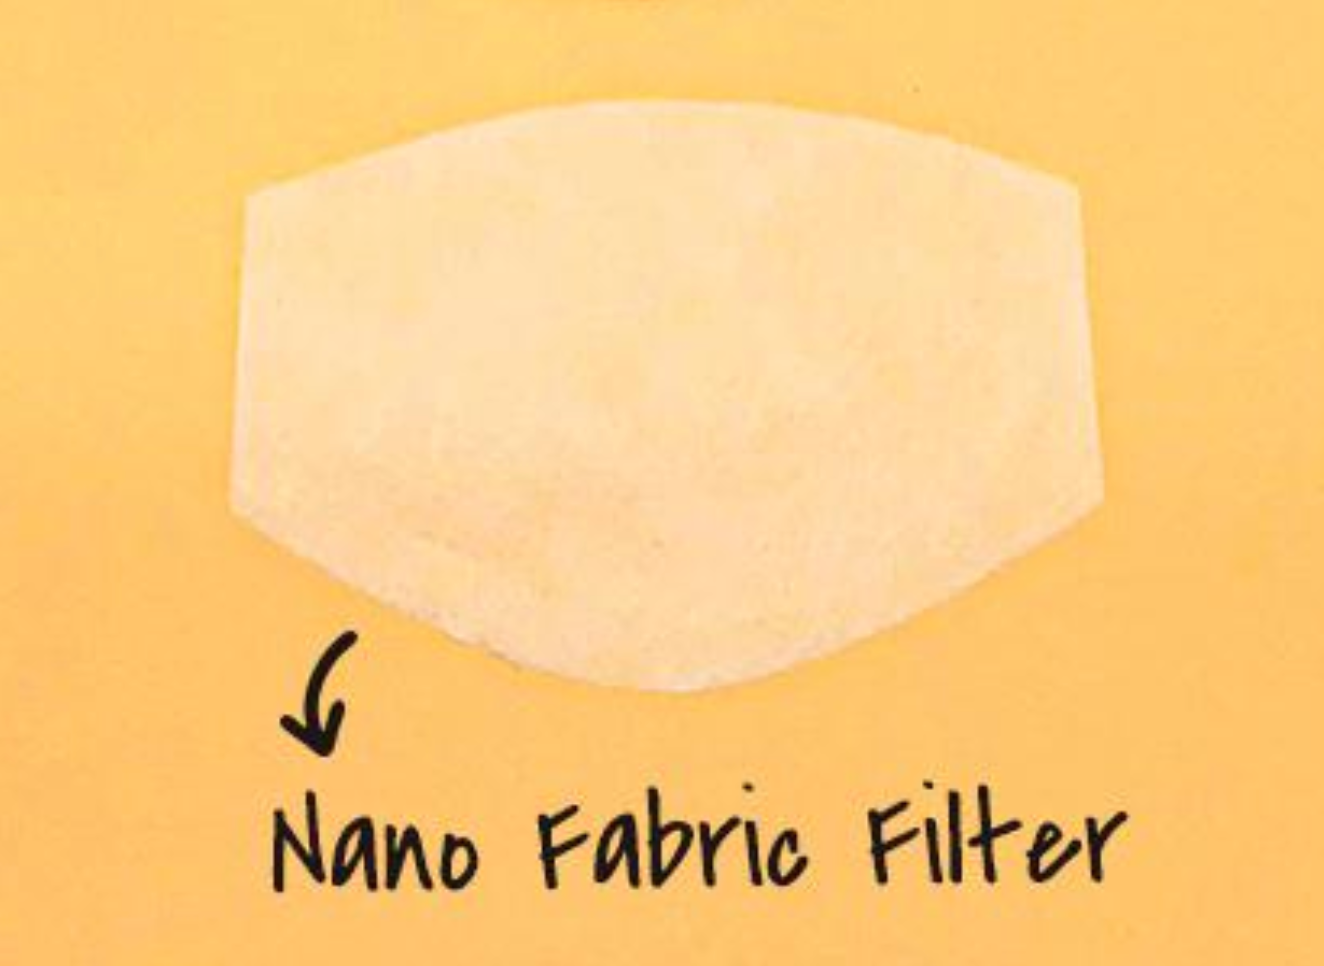 Nano Fabric Filters - The Peoples Mask